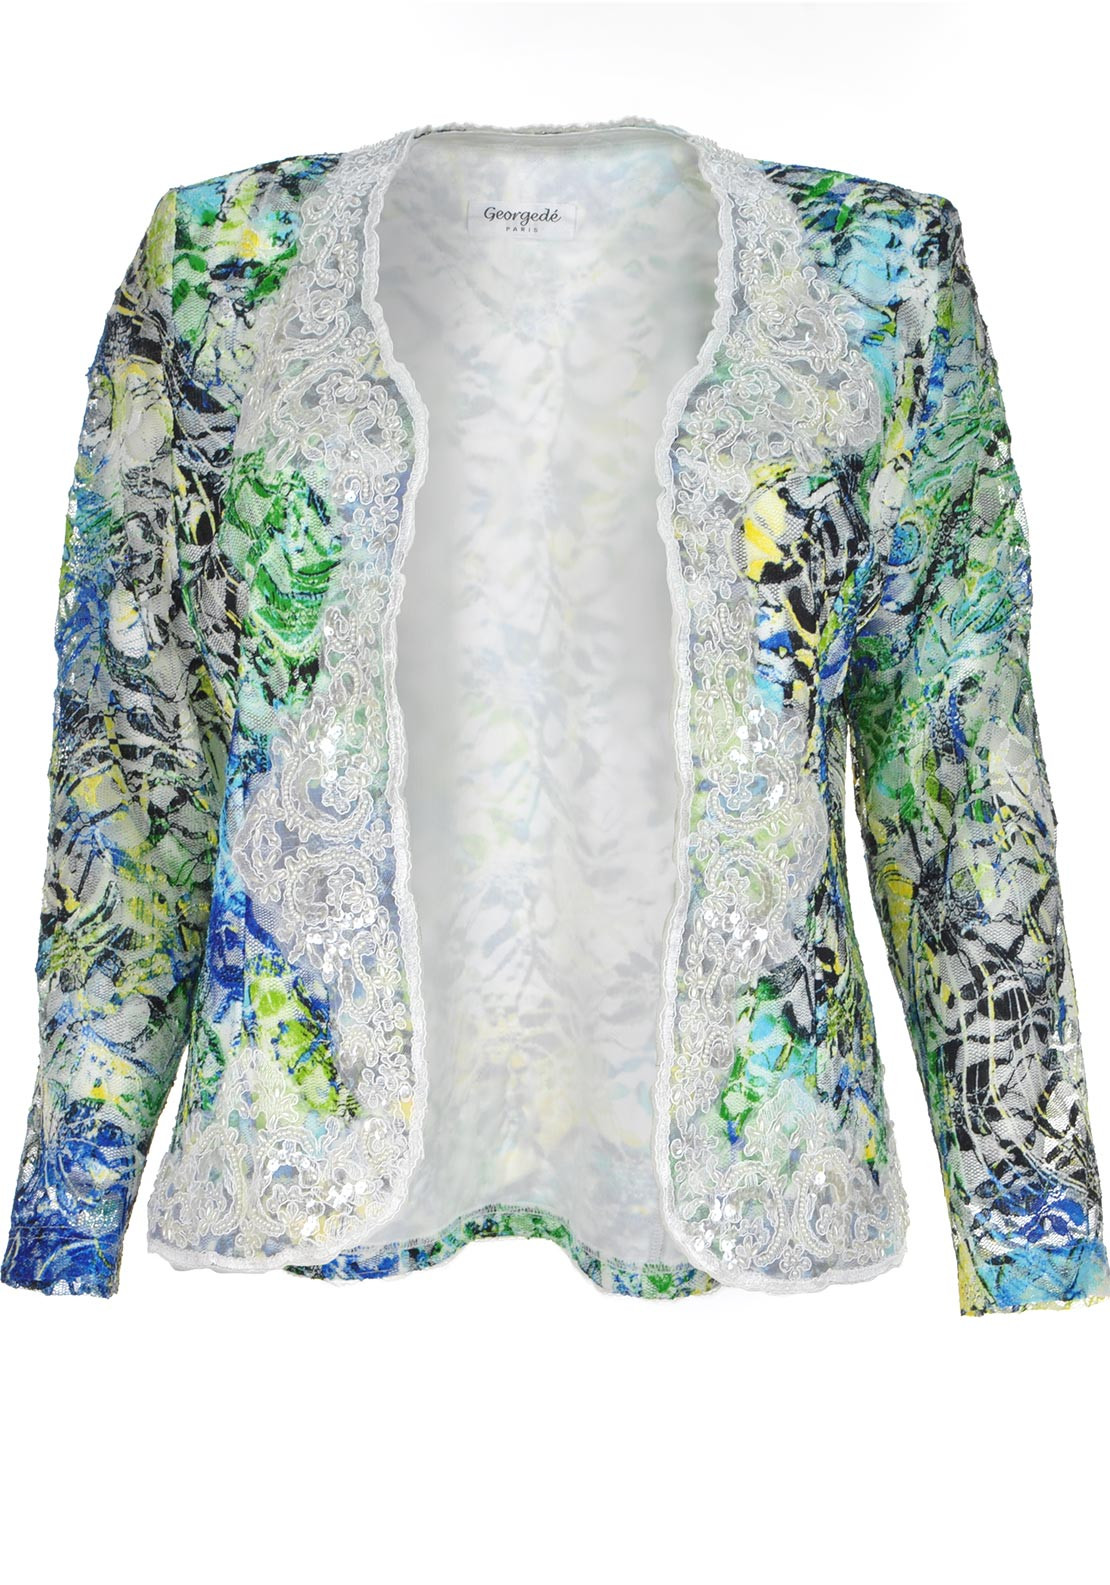 Georgede Embellished Printed Lace Jacket, Multi-Coloured